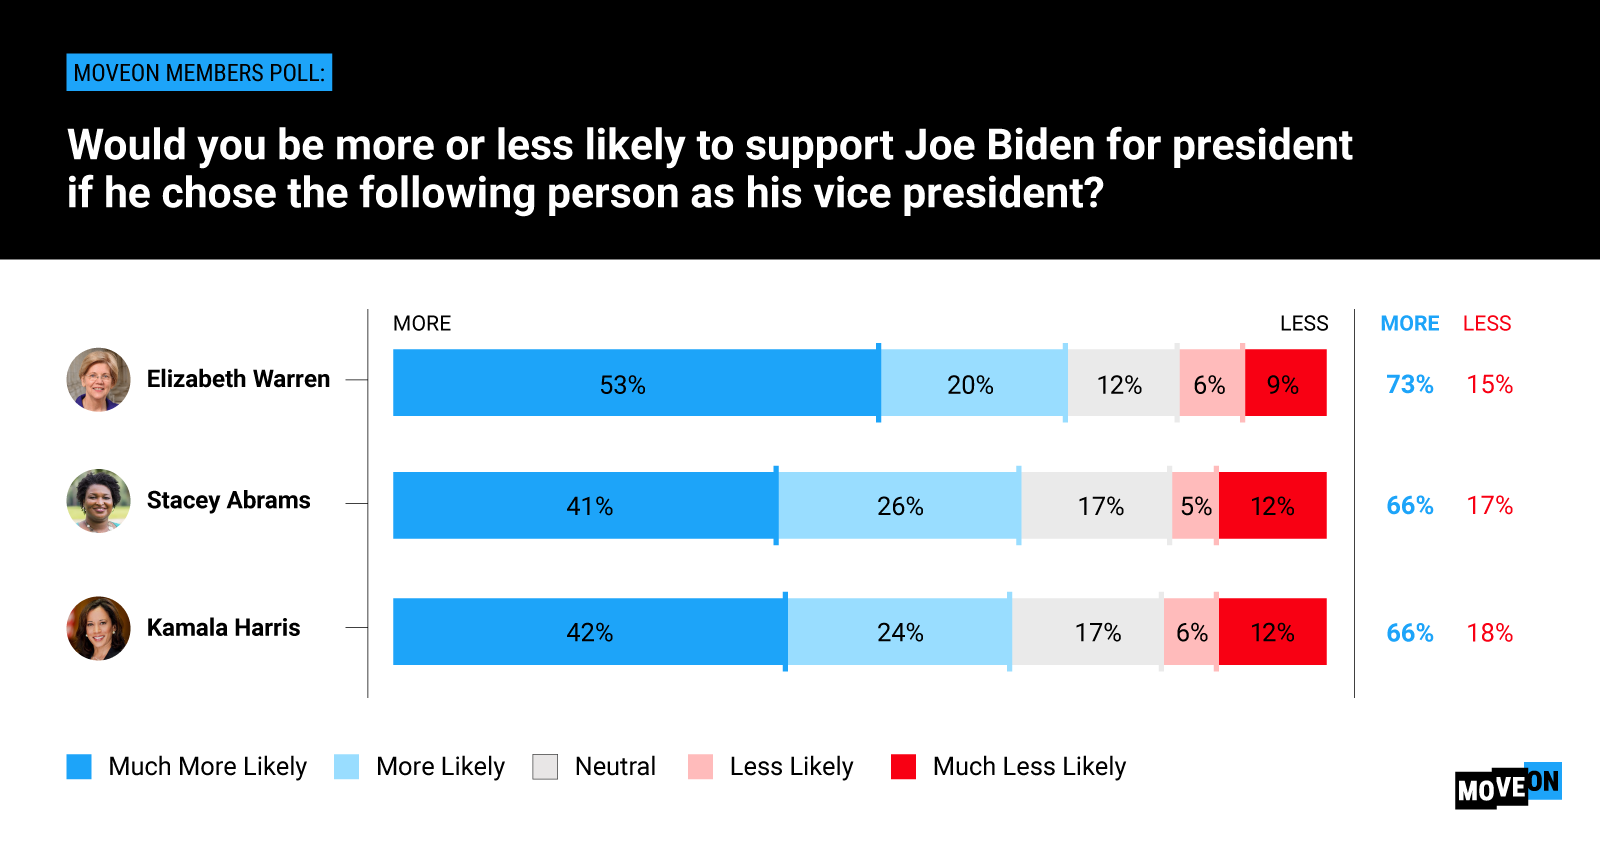 Title: Would you be more or less likely to support Joe Biden for president if he chose the following person as his vice president? Elizabeth Warren, 73% more, 15% less. Stacey Abrams, 66% more, 17% less. Kamala Harris, 66% more, 18% less.